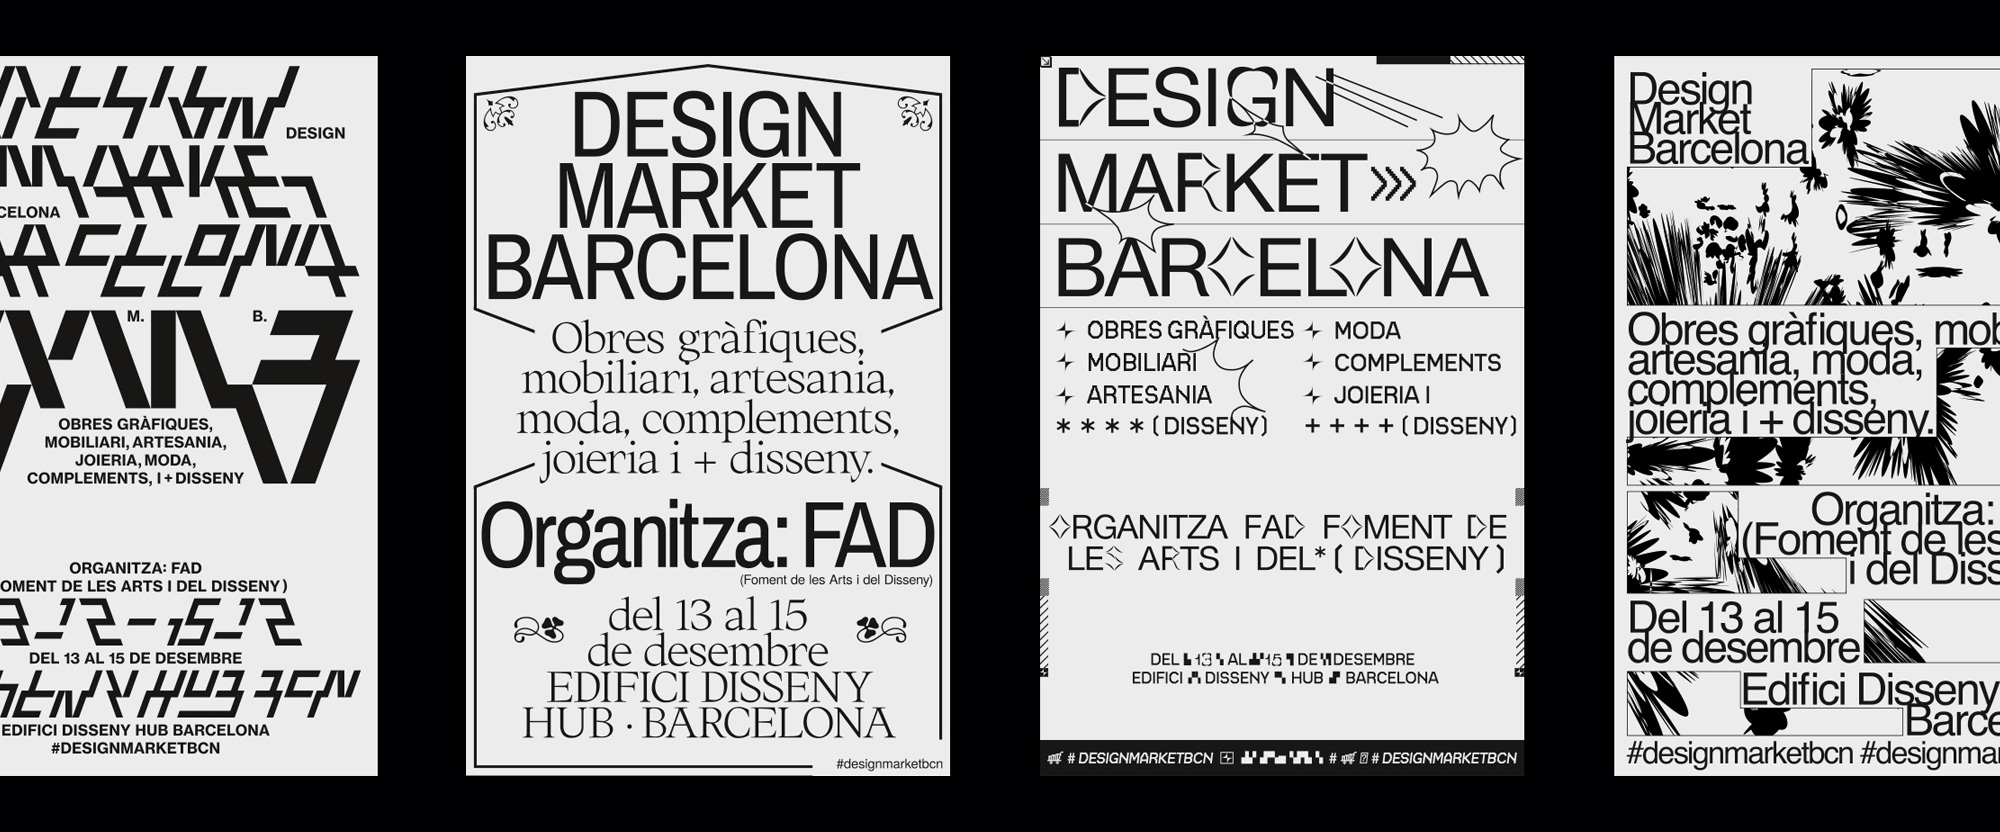 New Identity for Design Market Barcelona by Naranjo-Etxeberria